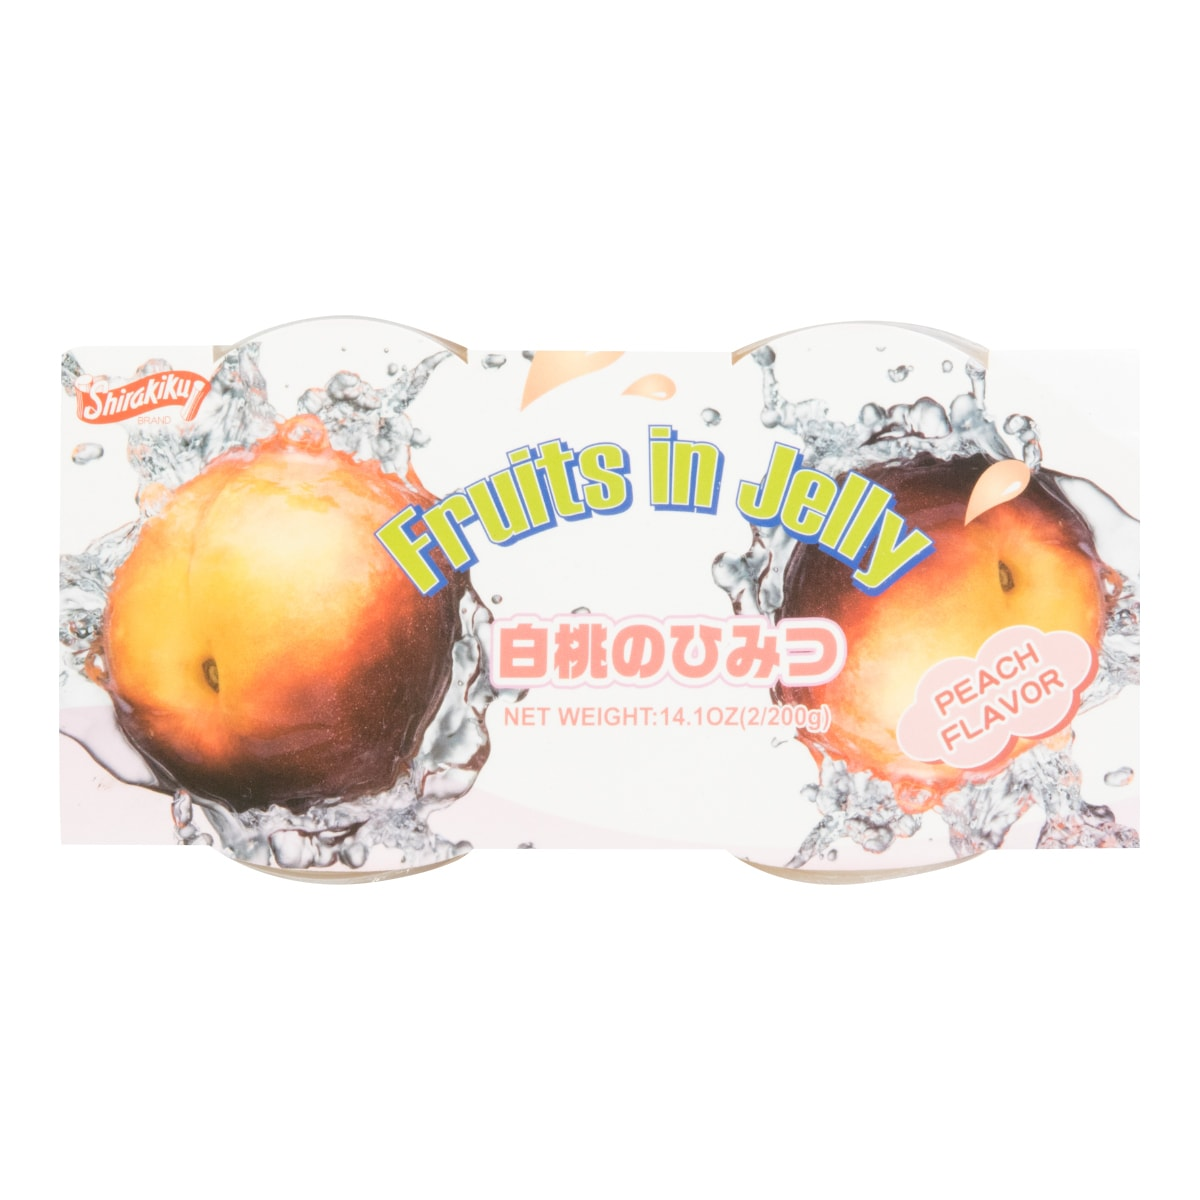 SHIRAKIKU Jelly Cup Peach Flavor 2 Cups 400g